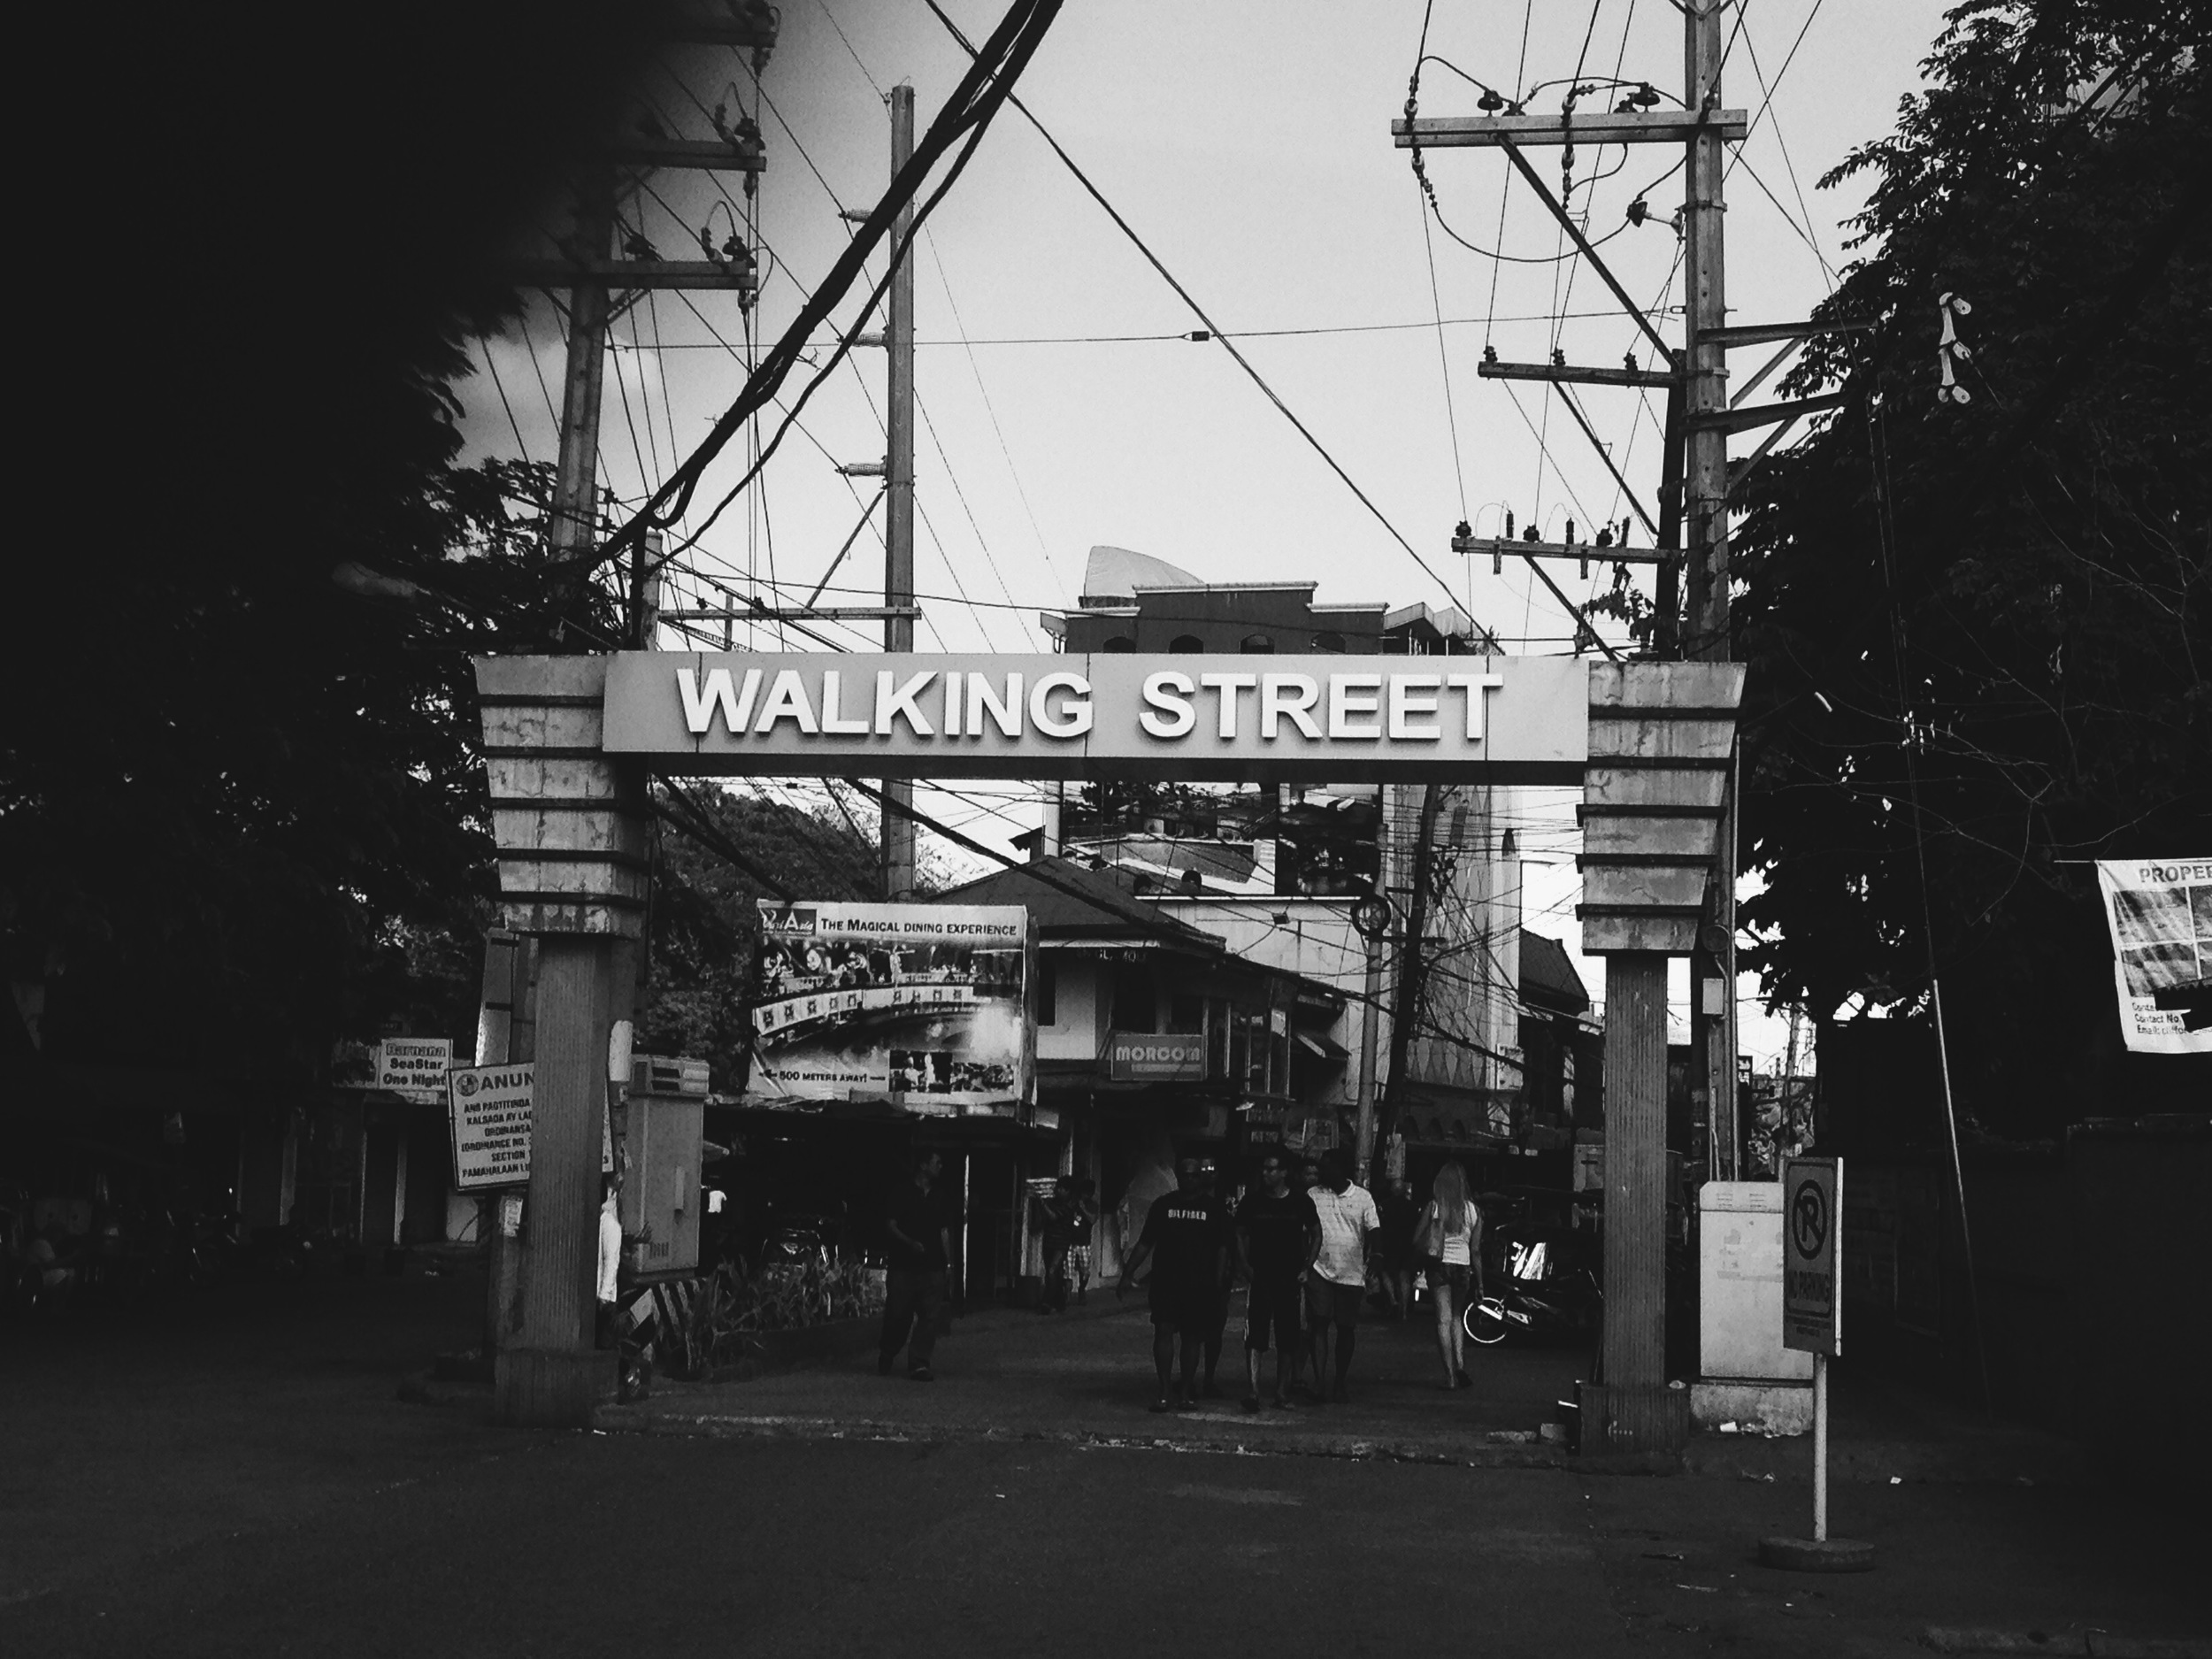 Entrance to the infamous Walking Street in Angeles City, Philippines, known for prostitution